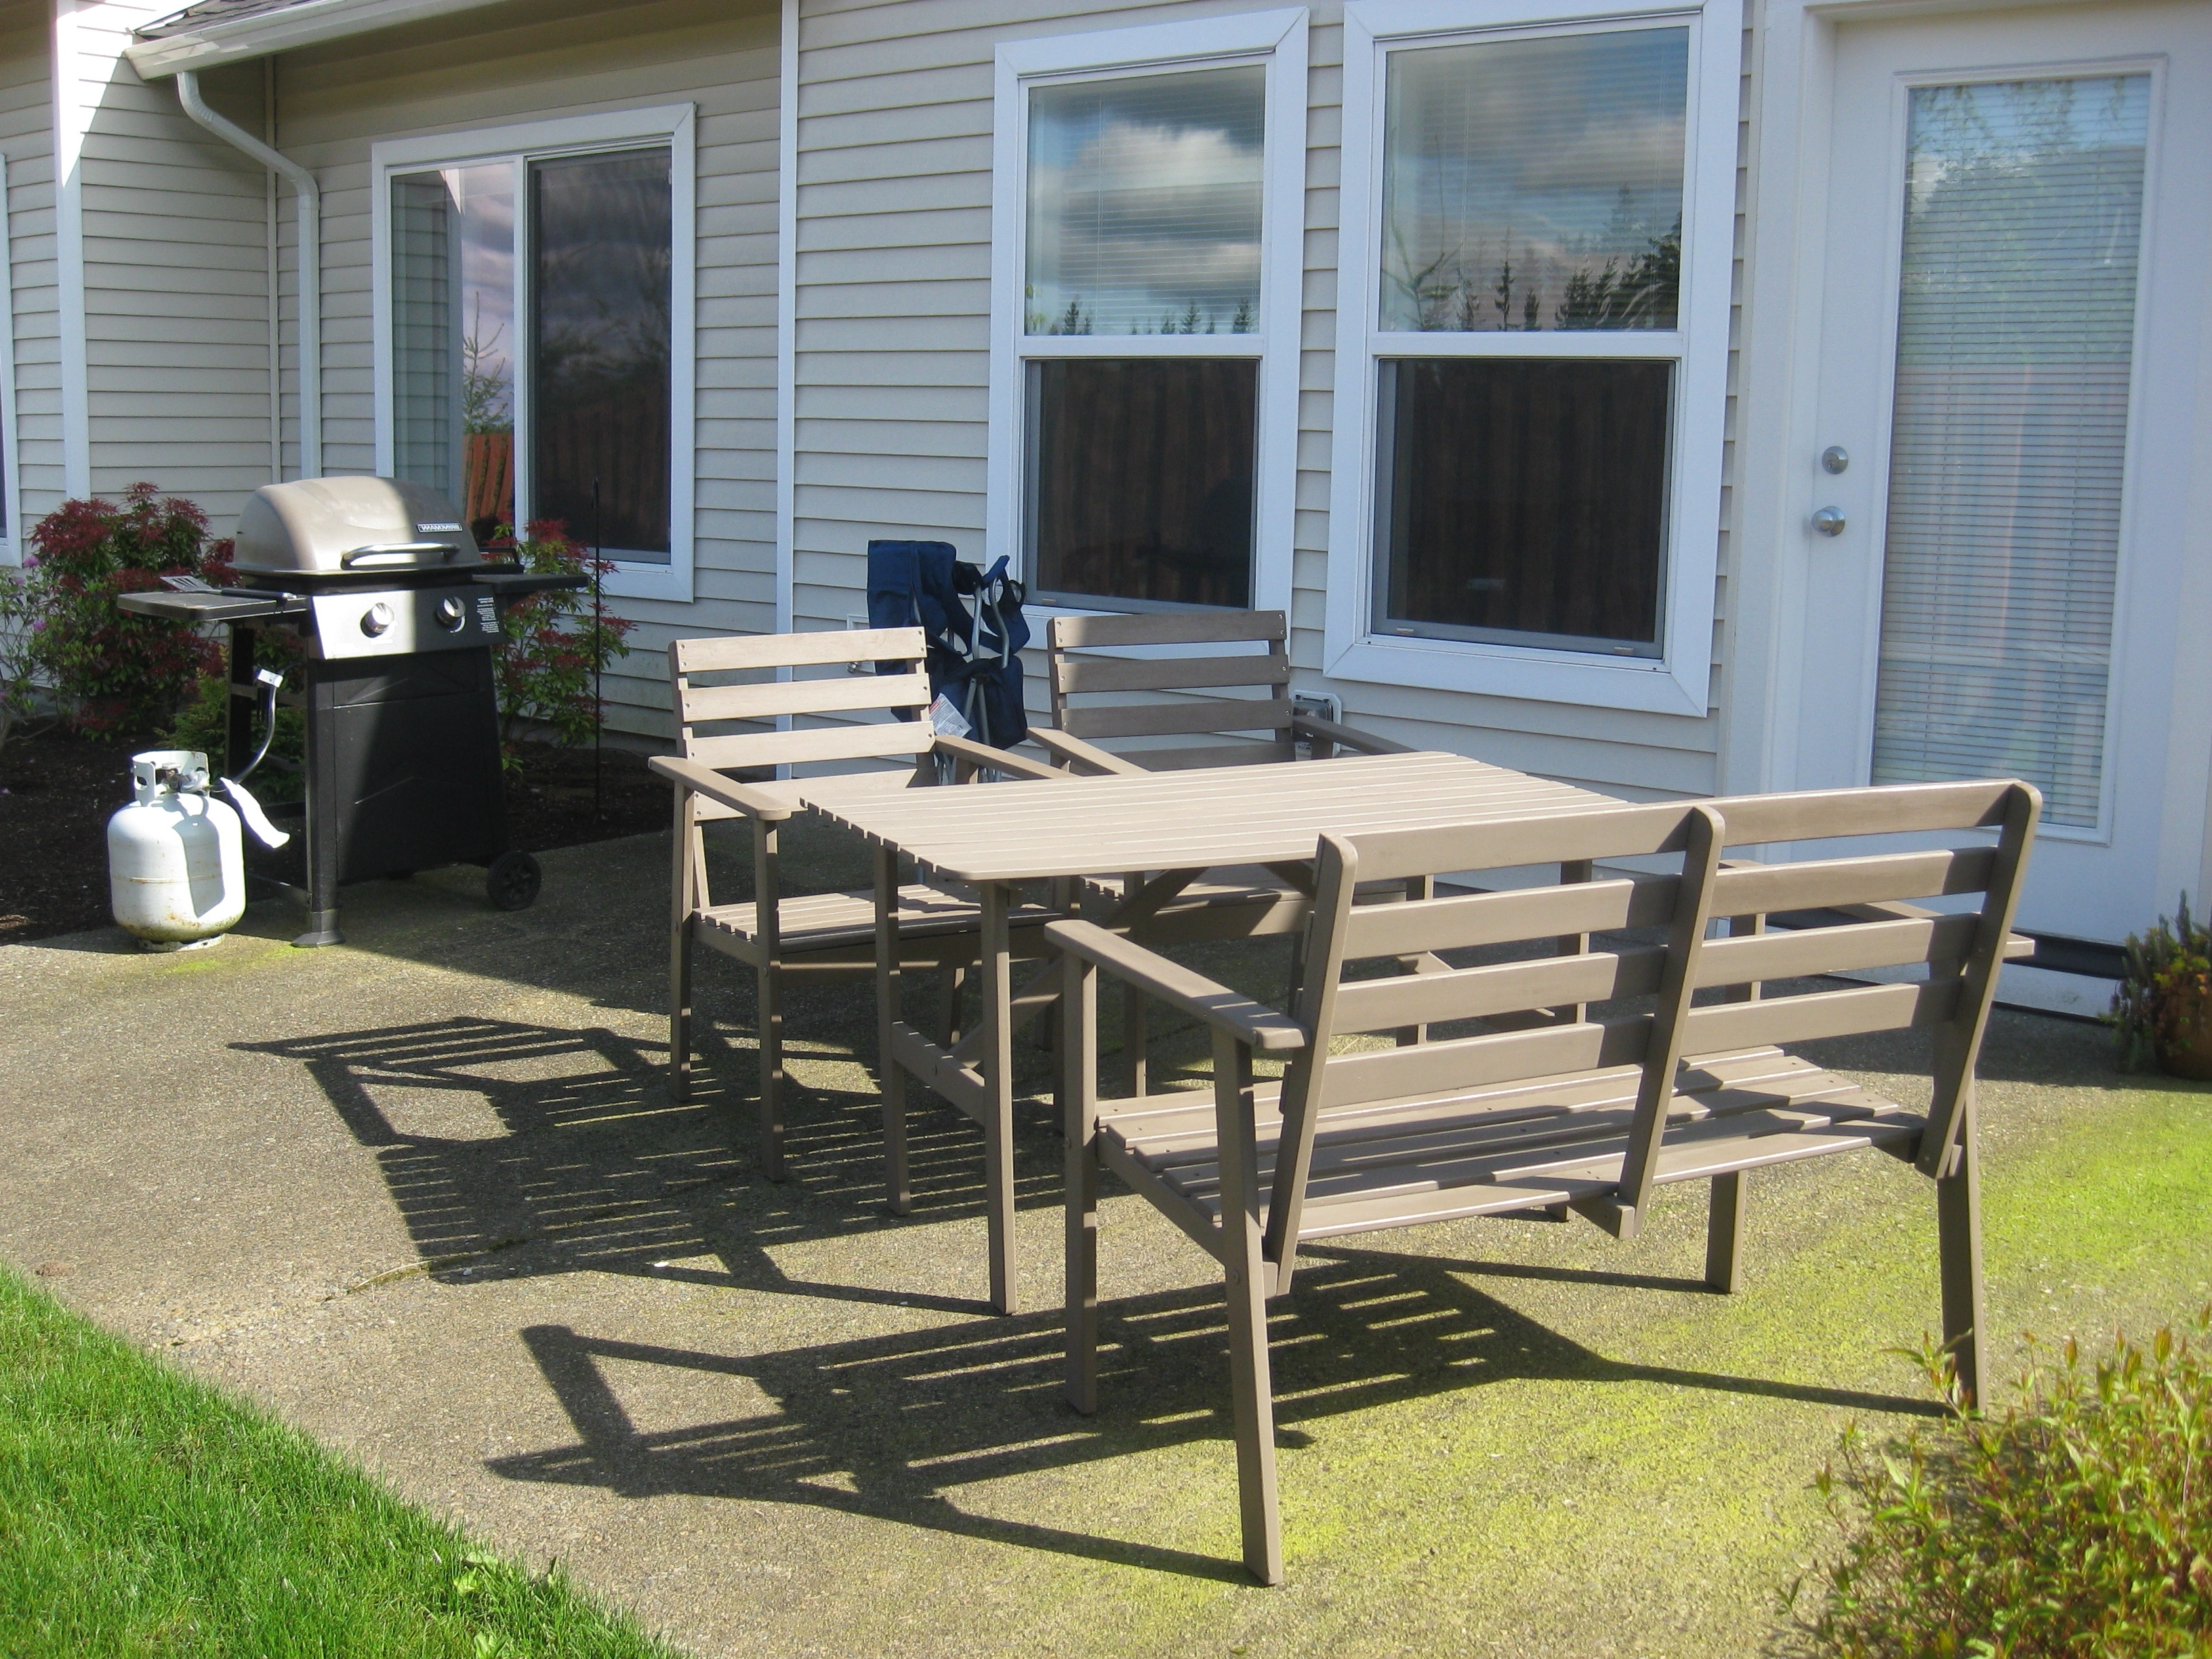 Best And Newest 46 Ikea Patio Set, Furniture: Delightful Ikea Patio Chairs Ikea Pertaining To Ikea Patio Conversation Sets (View 8 of 20)